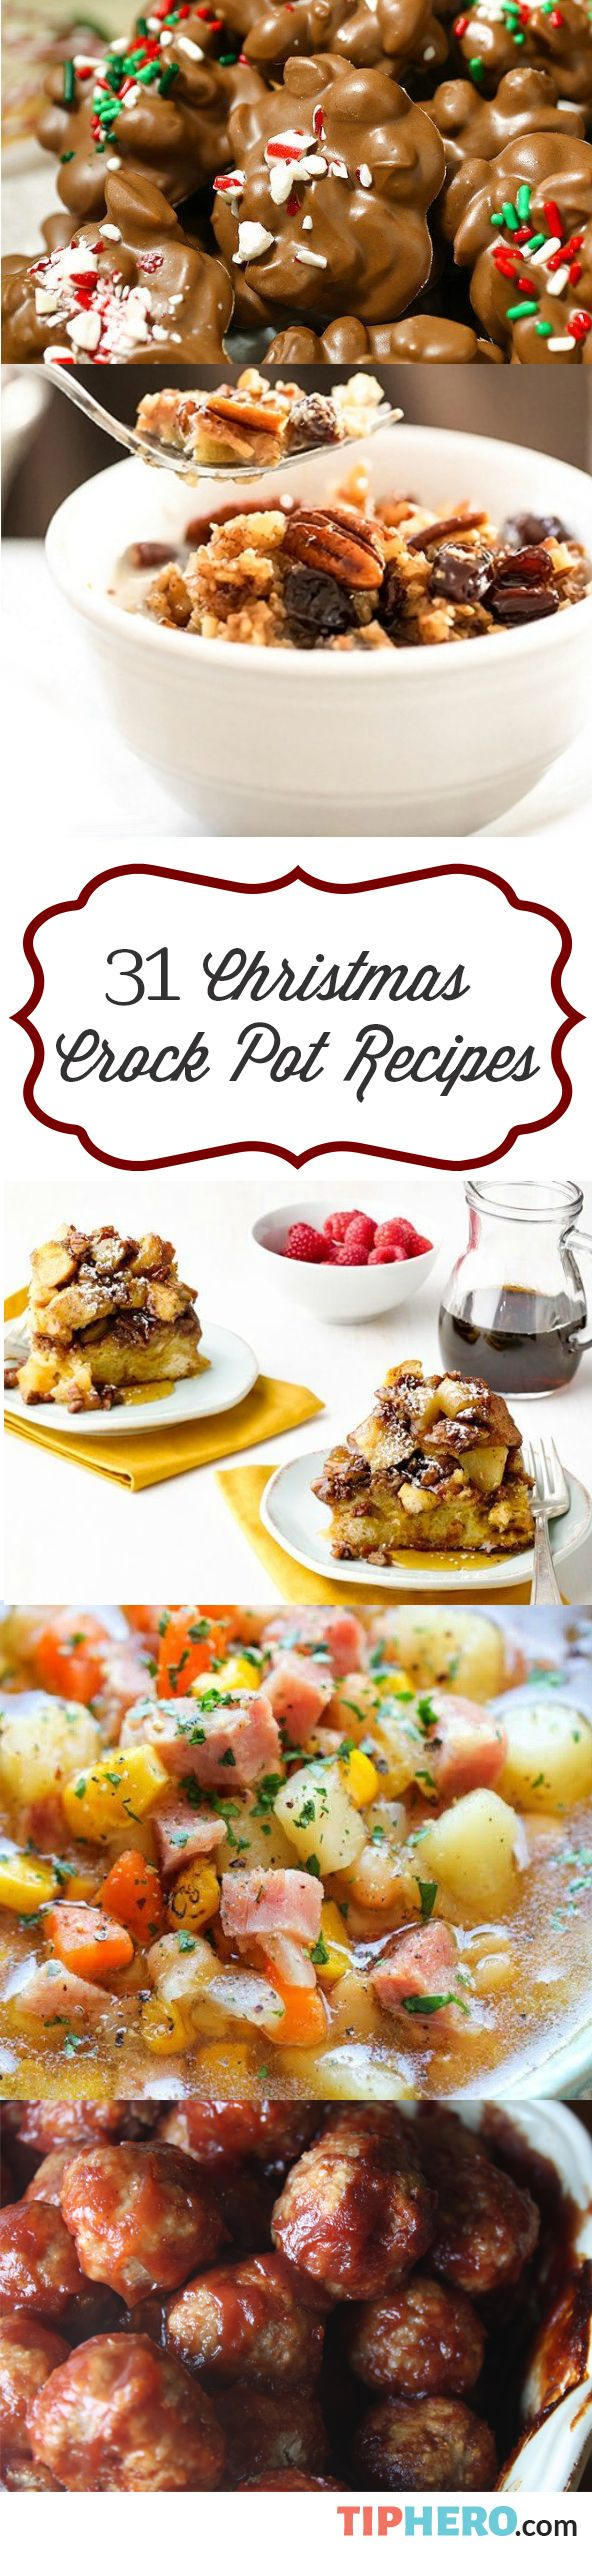 31 Christmas Crock Pot Recipes   This collection of holiday recipes from brunch to appetizers to sides to mains to dessert will help you spend less time in the kitchen and more time celebrating with family! #easyrecipes